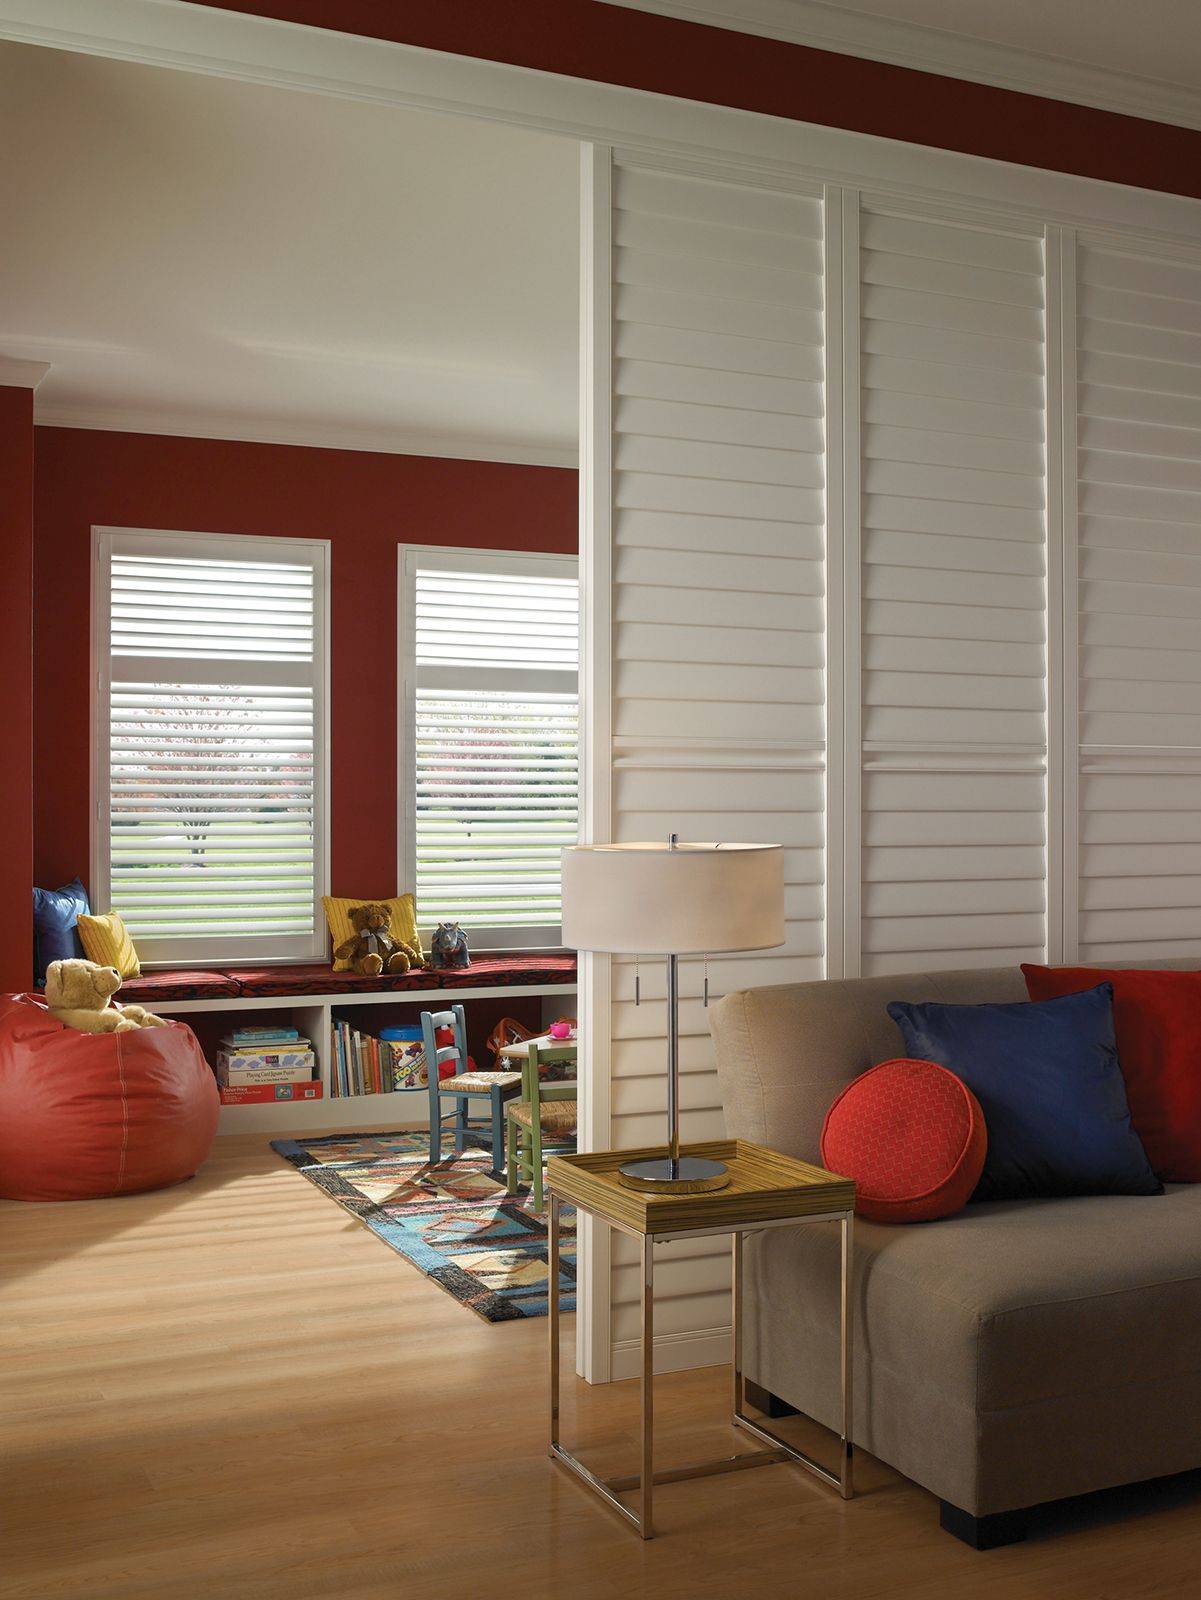 Cotton • 3½ inch louvers on Room Divider/By-Pass Track System with Decorative Valance • Deluxe Divider Rail • UltraClearview® hidden rear tilt